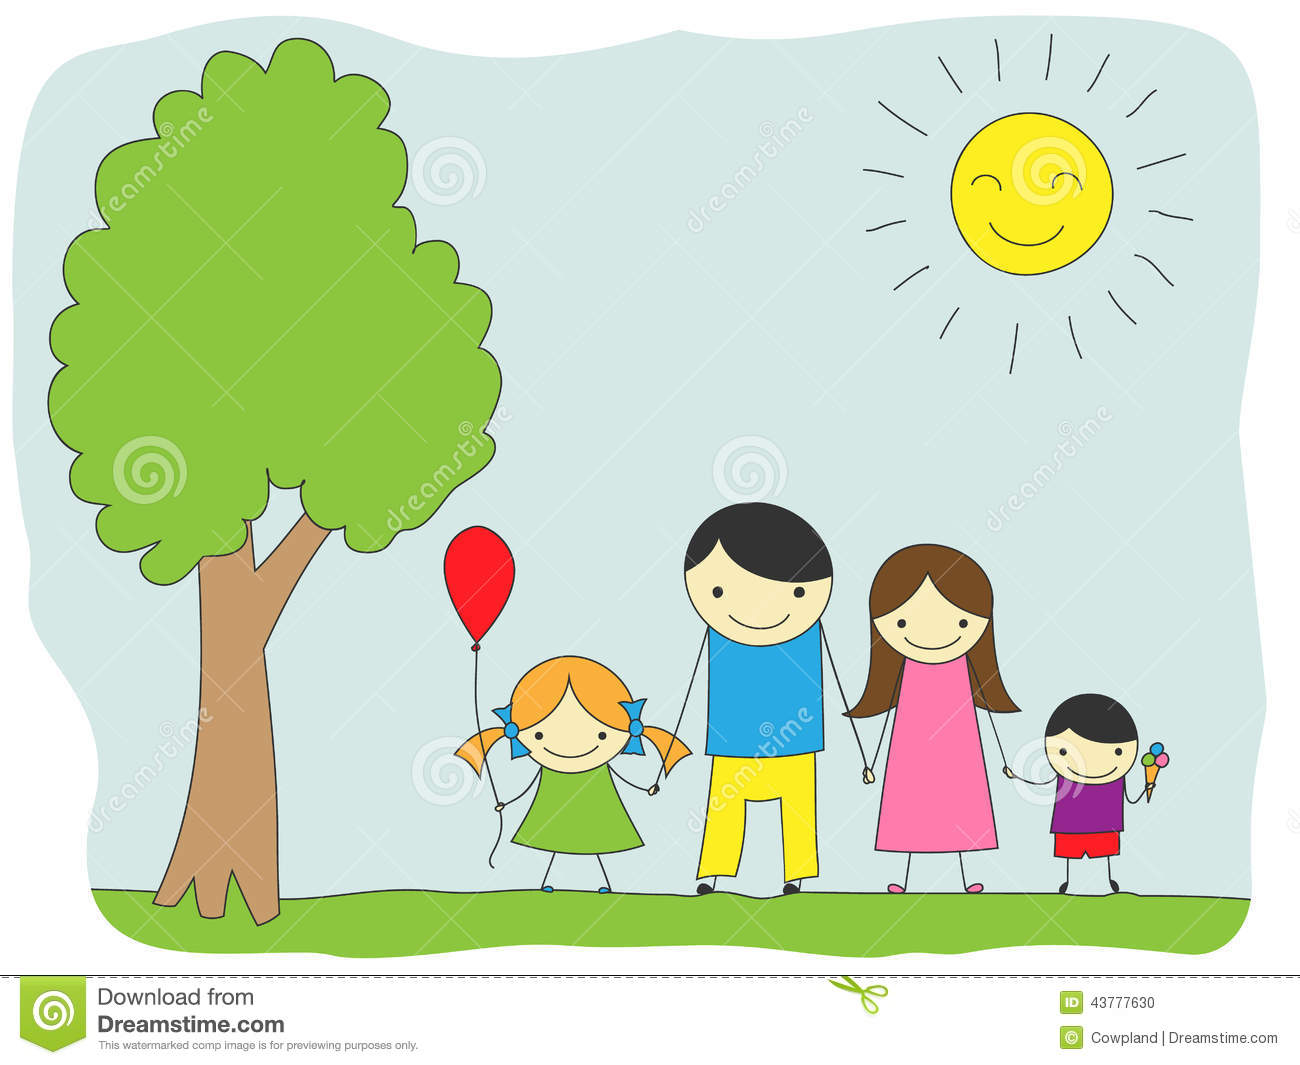 Happy family outing, fun in the sunny day!